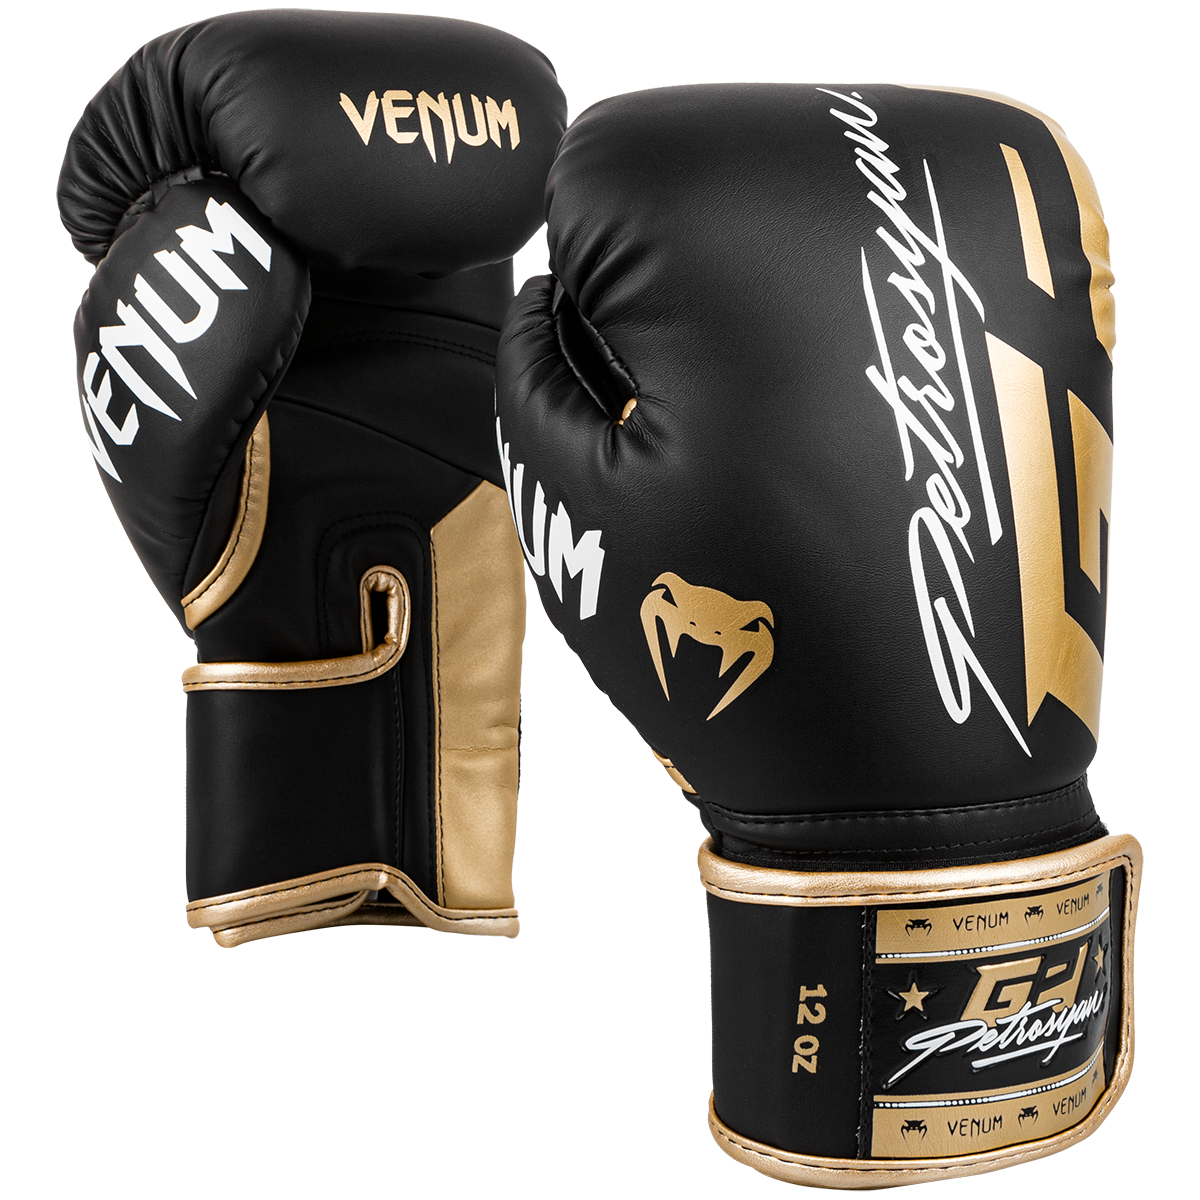 Venum Petrosyan Boxing Gloves - Black/Gold